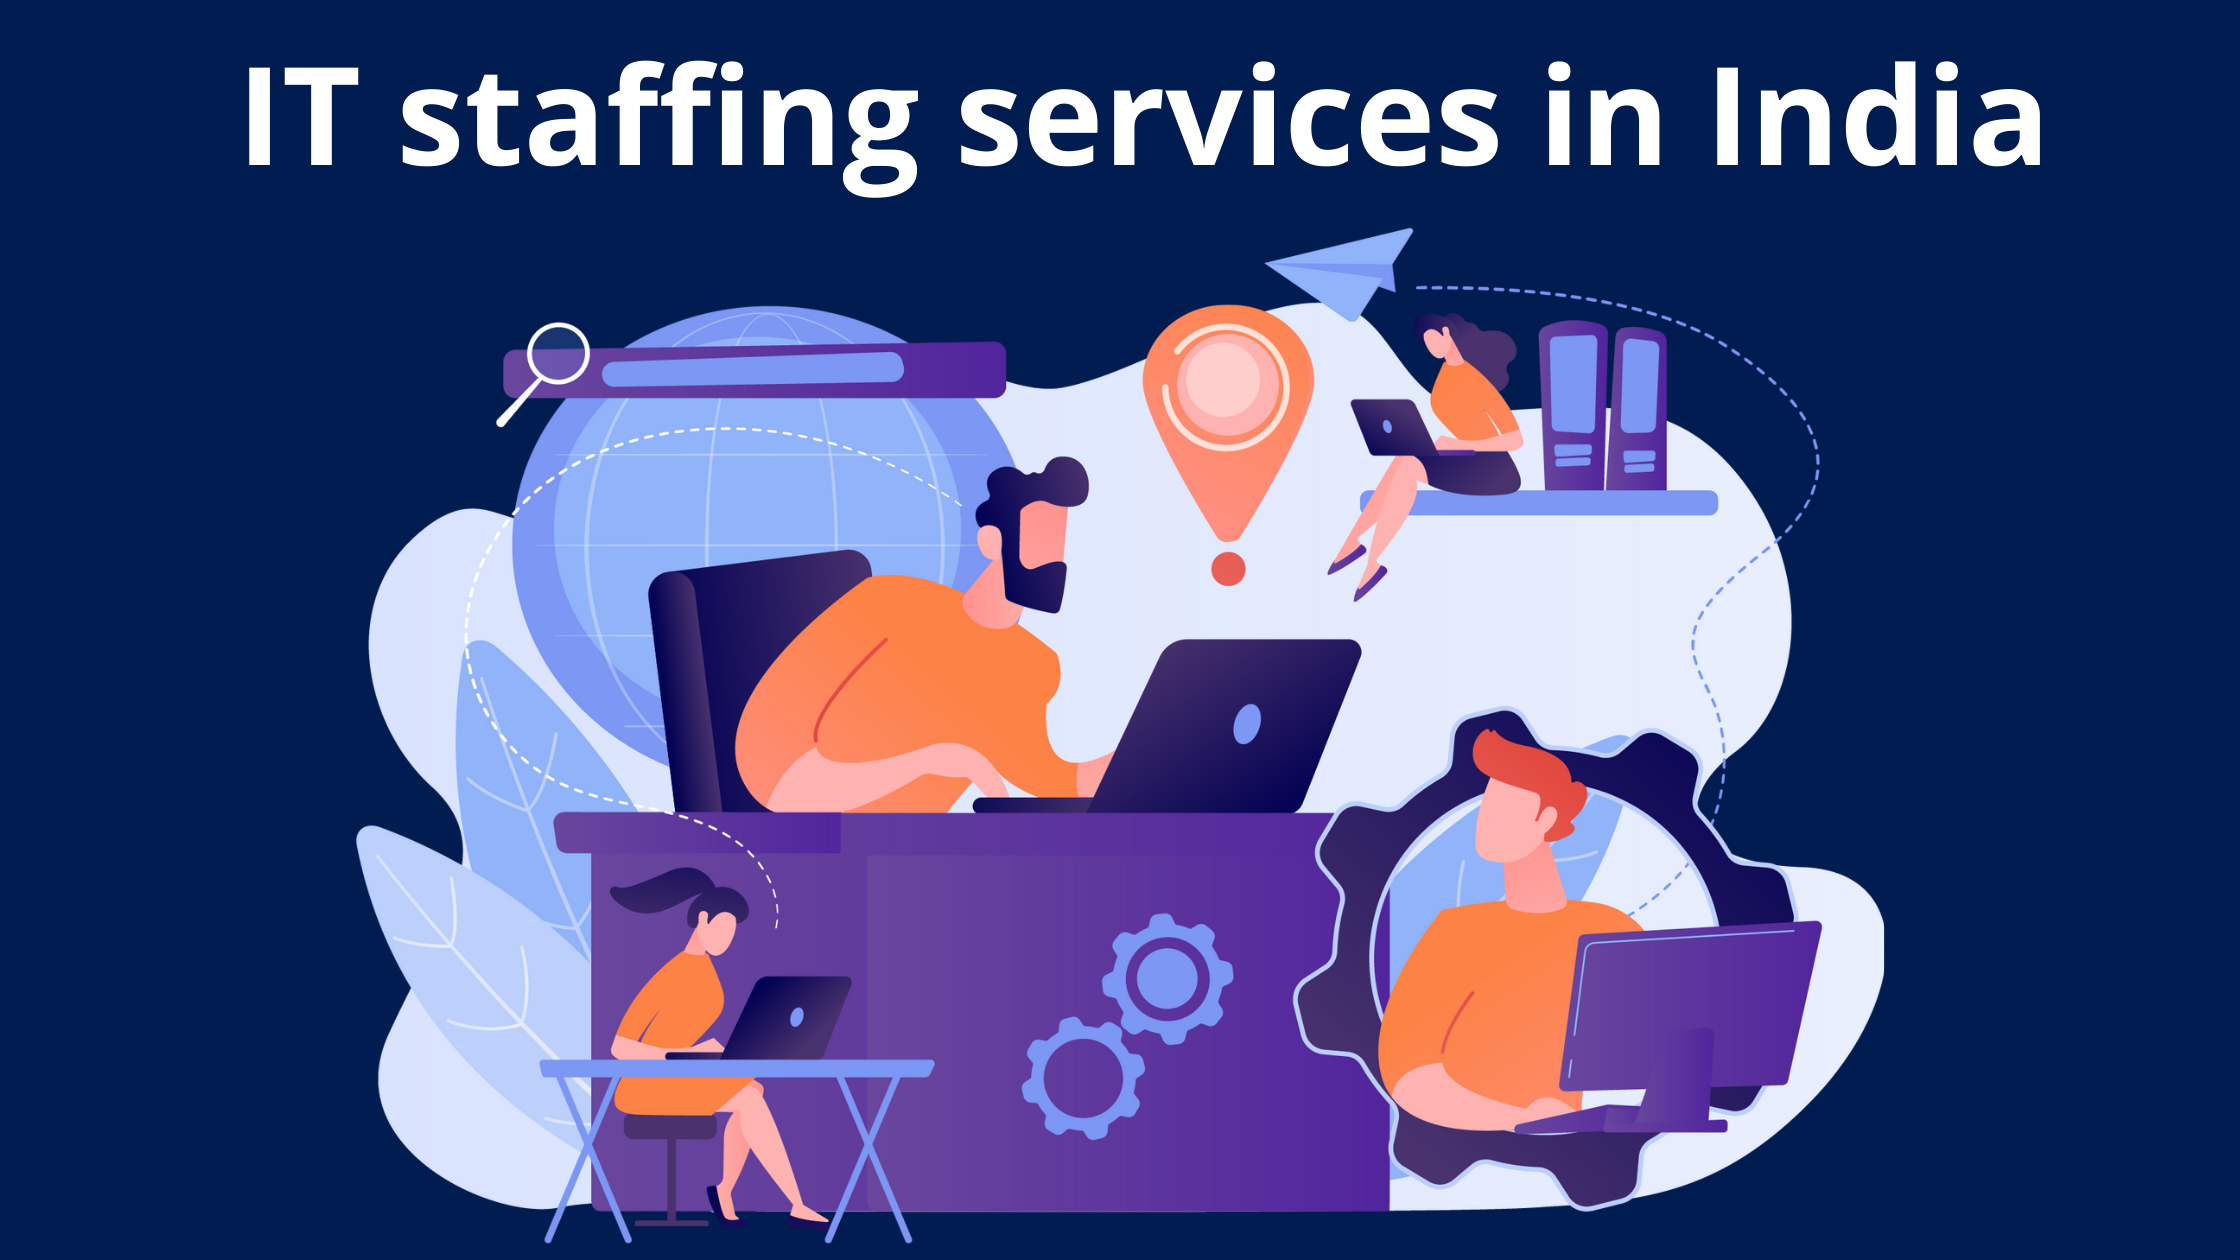 IT staffing services in India- IT staffing services firms in India